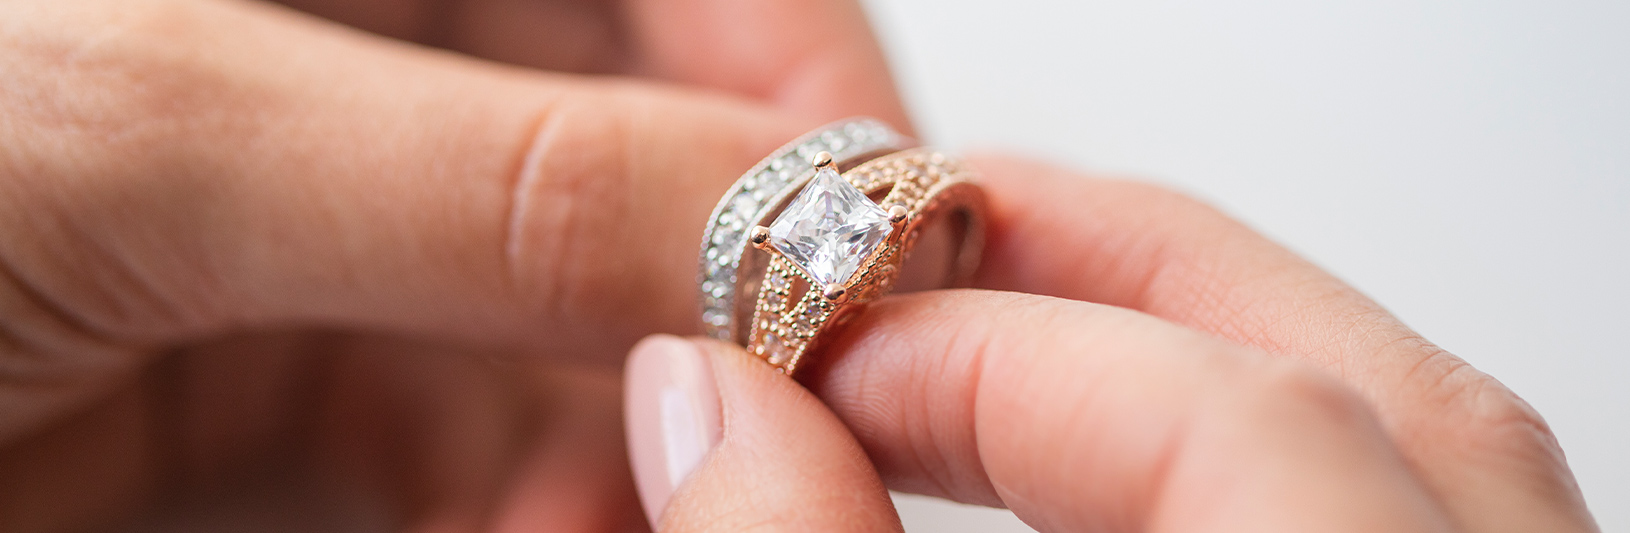 A Princess cut engagement ring paired with a silver accented wedding band